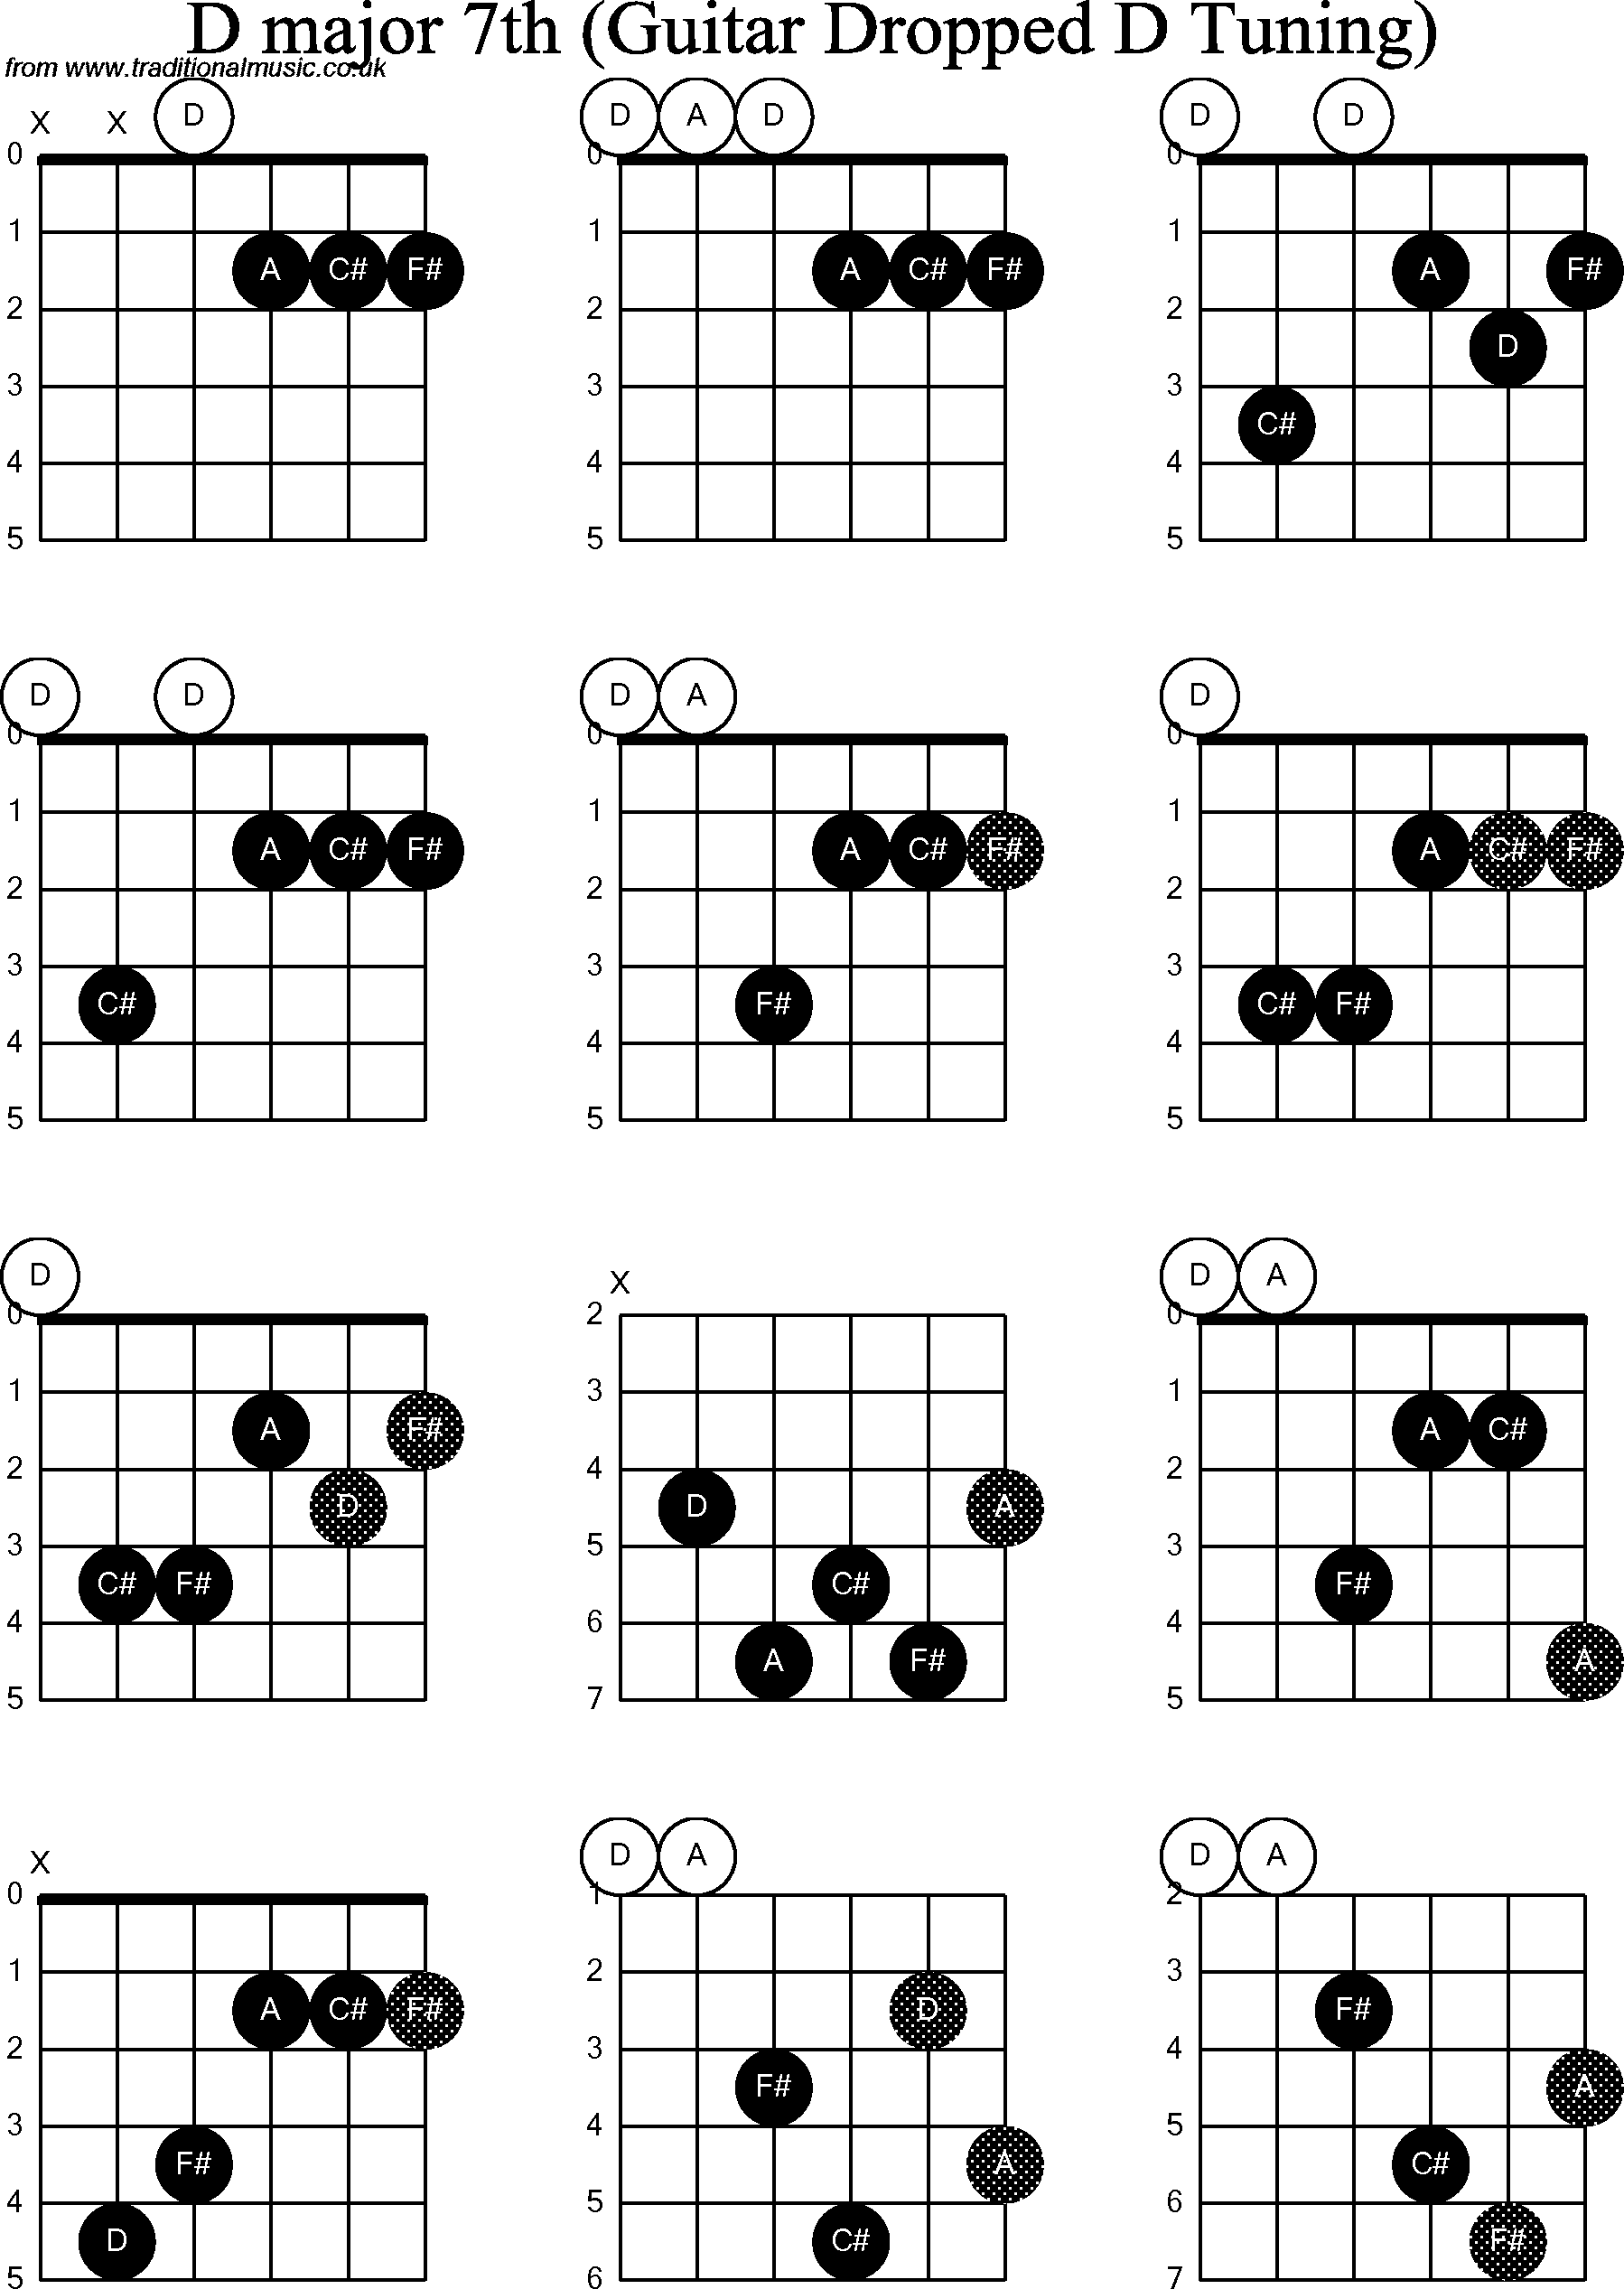 Chord diagrams for Dropped D Guitar(DADGBE), D Major7th